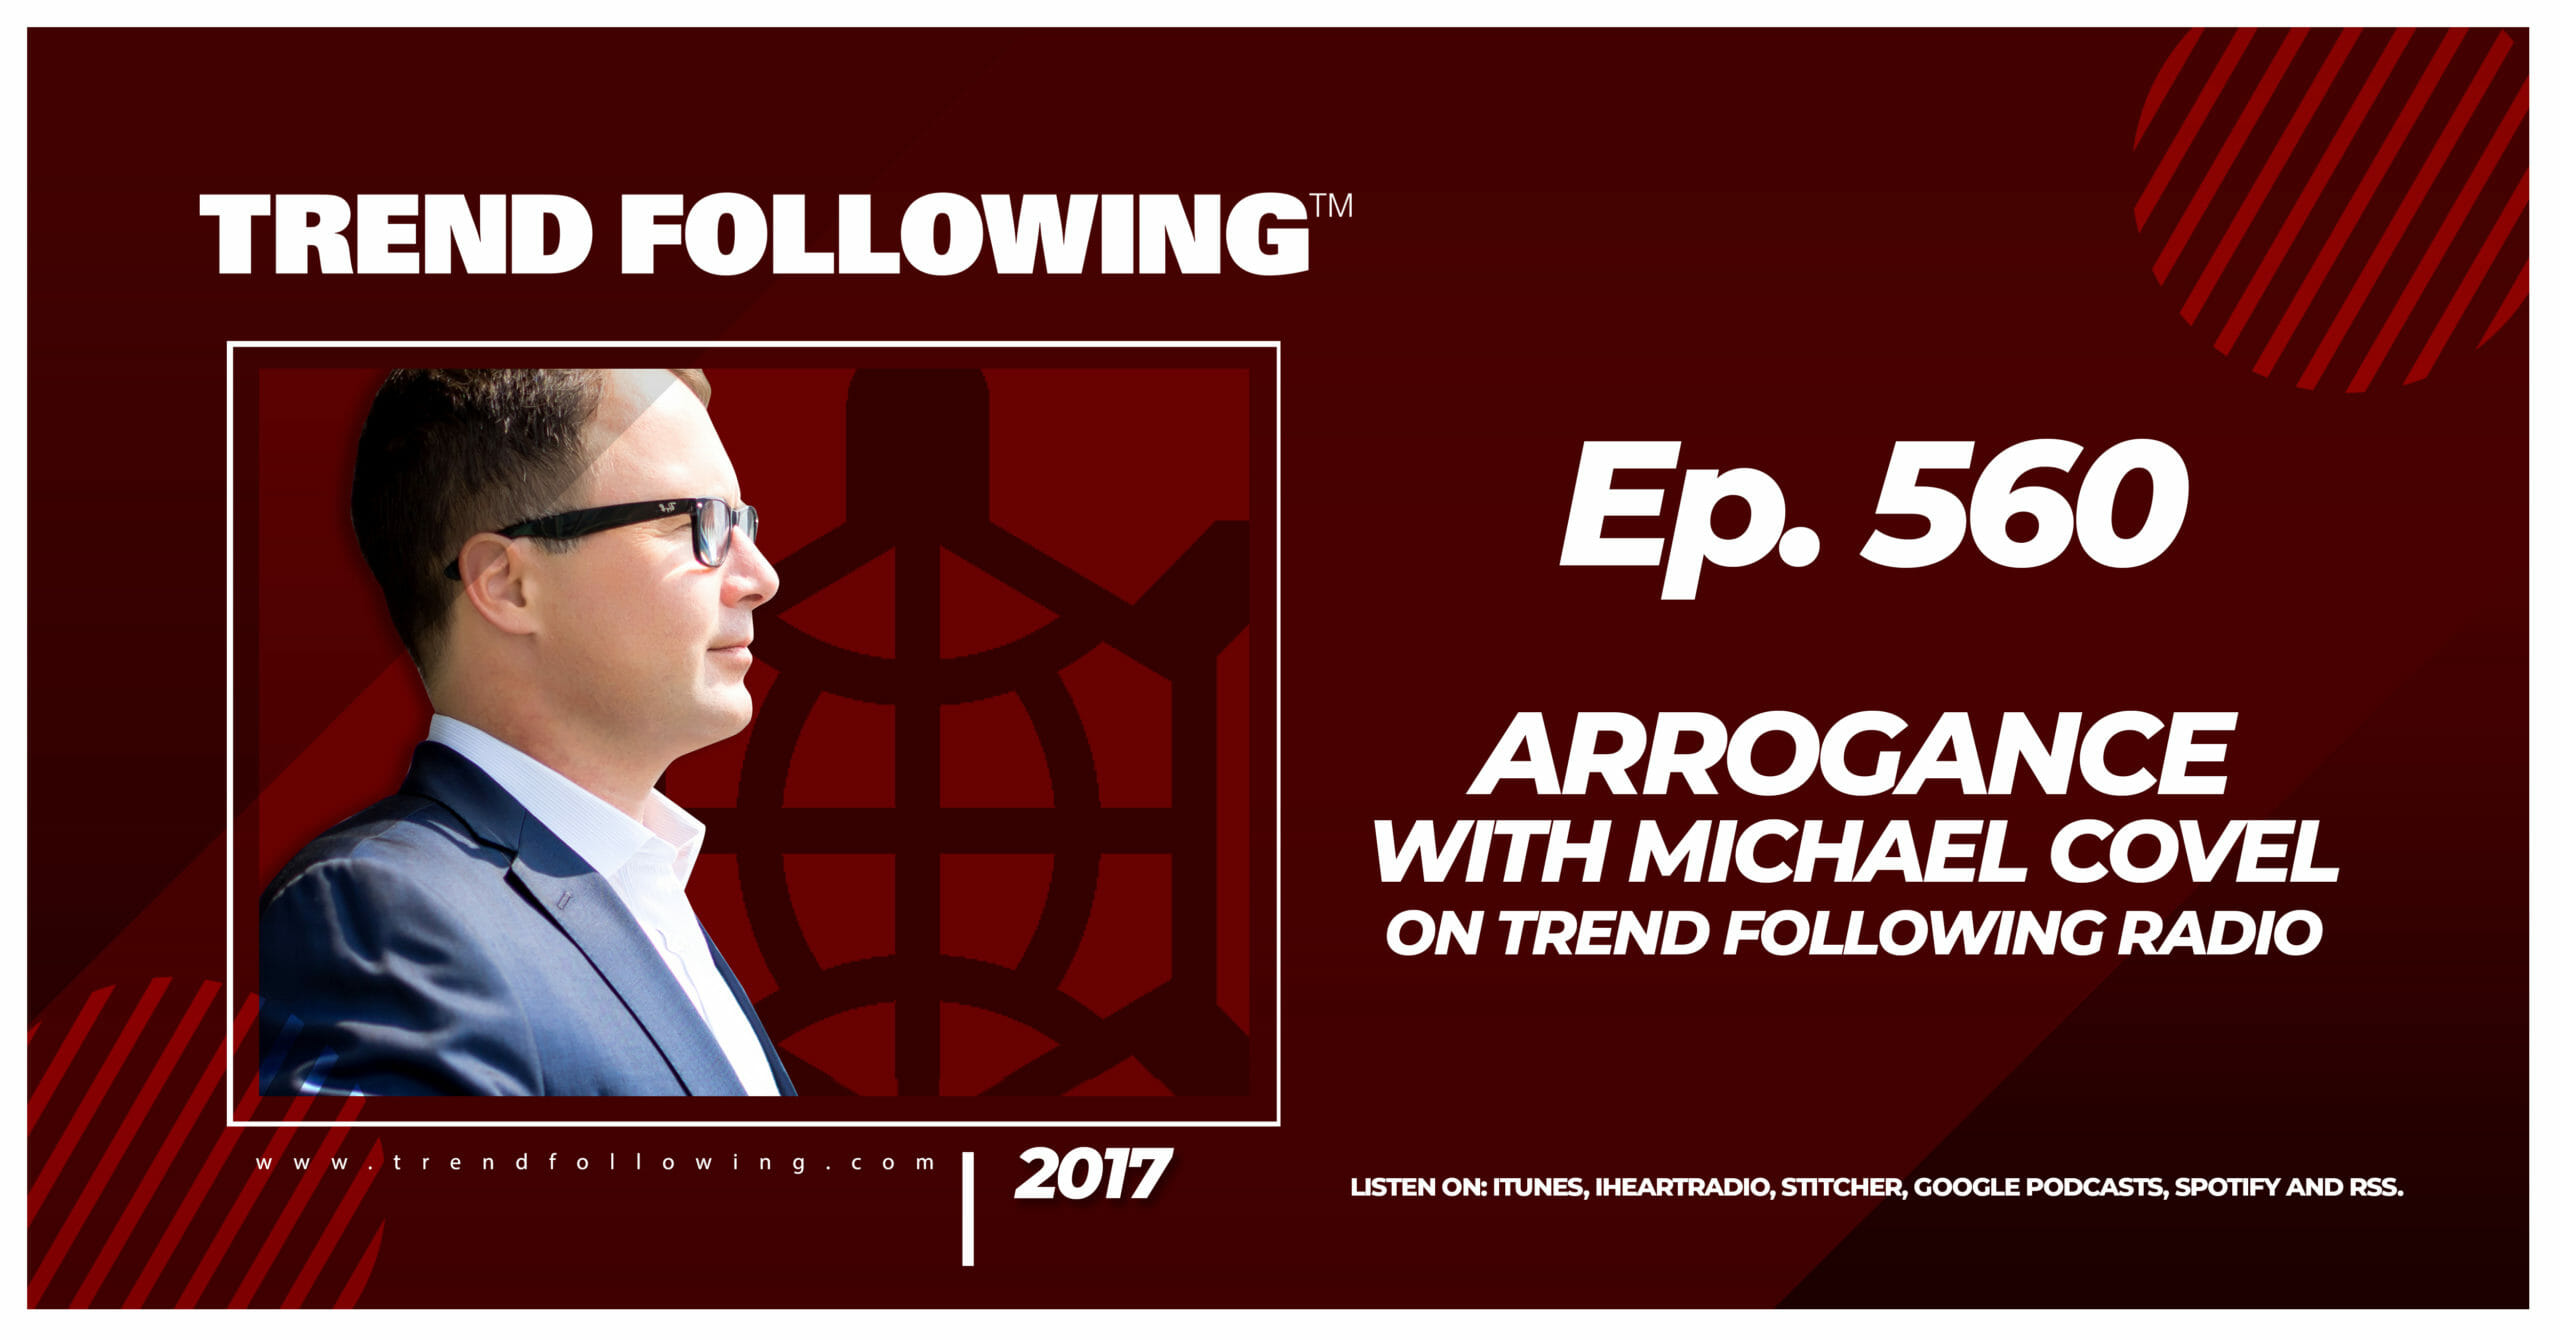 Arrogance with Michael Covel on Trend Following Radio